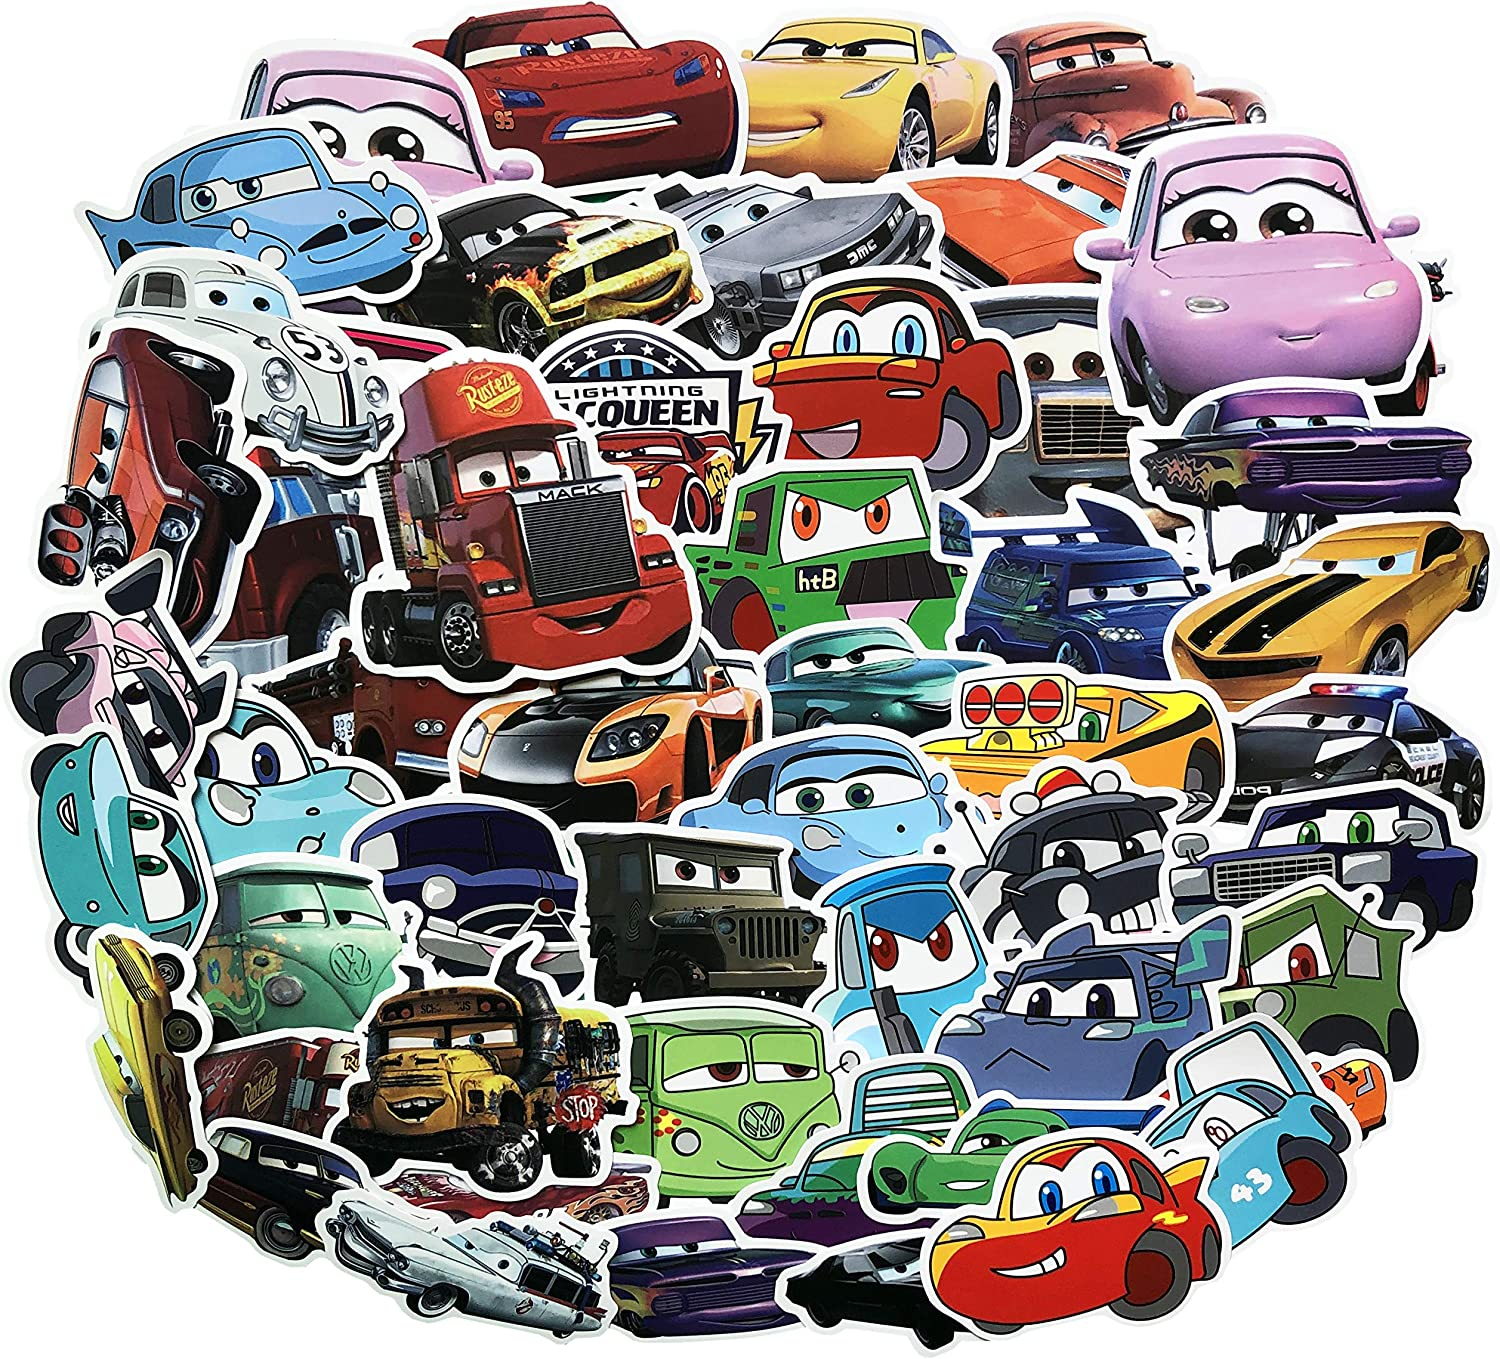 TV Stickers Greys Anatomy Stickers 50Pcs Waterproof Variety Vinyl Car Sticker Motorcycle Bicycle Luggage Decal Graffiti Patches Skateboard Stickers for Laptop Stickers JDM Greys Anatomy